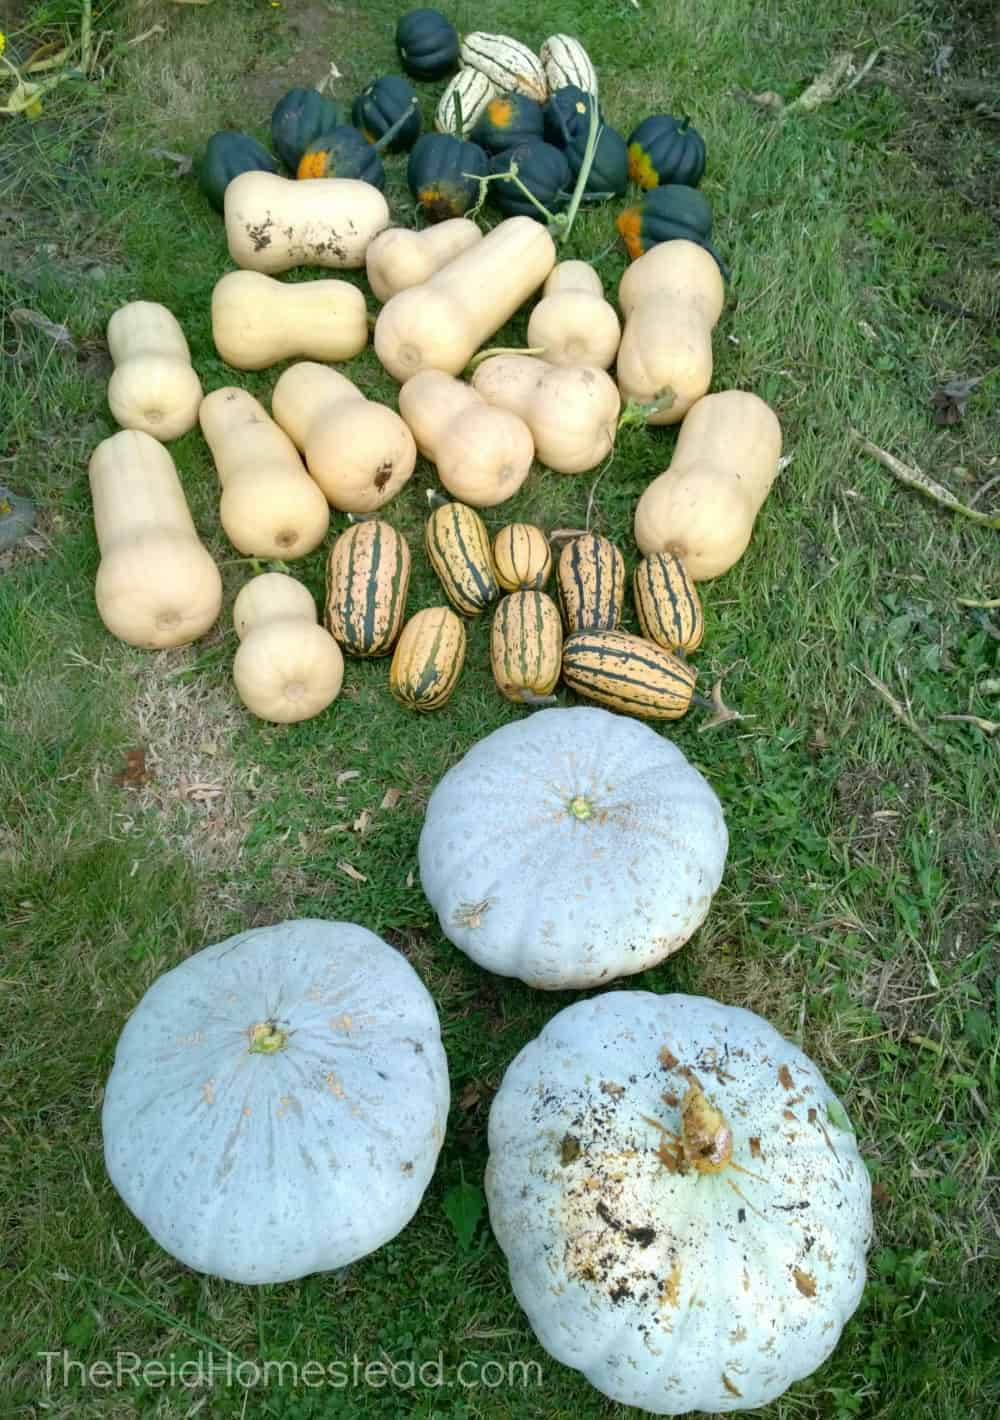 a pile of freshly harvest winter squash in the grass including acorn squash, butternut, delicata and sweet meat